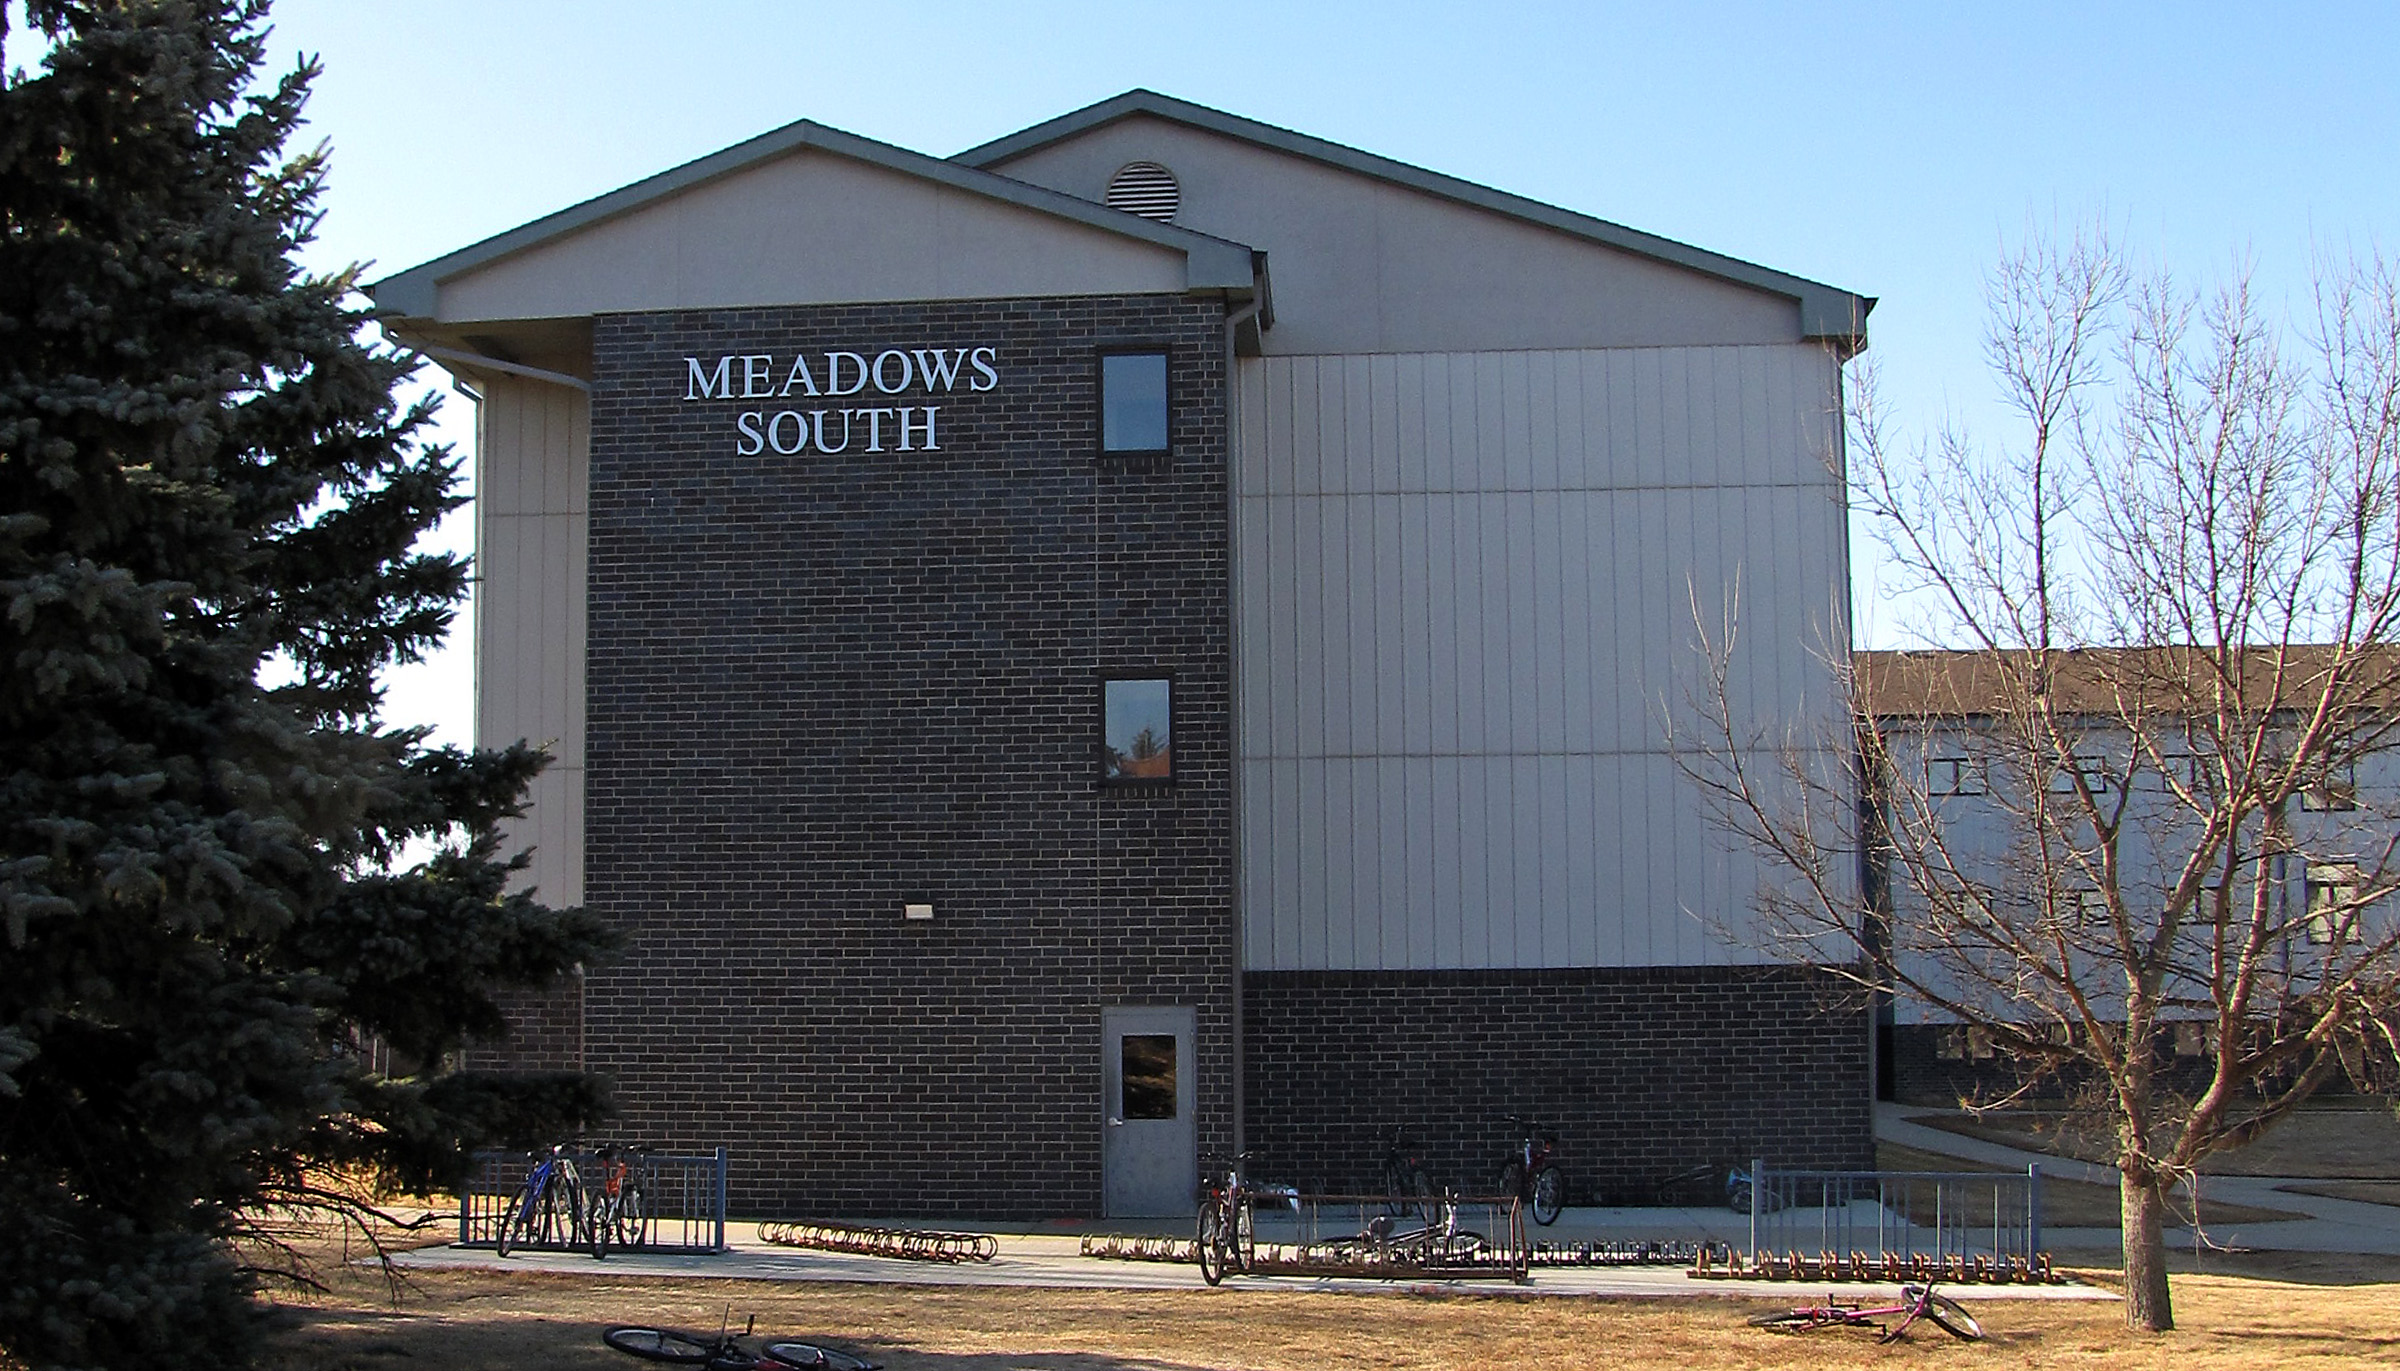 Meadows Apartments South Dakota State University